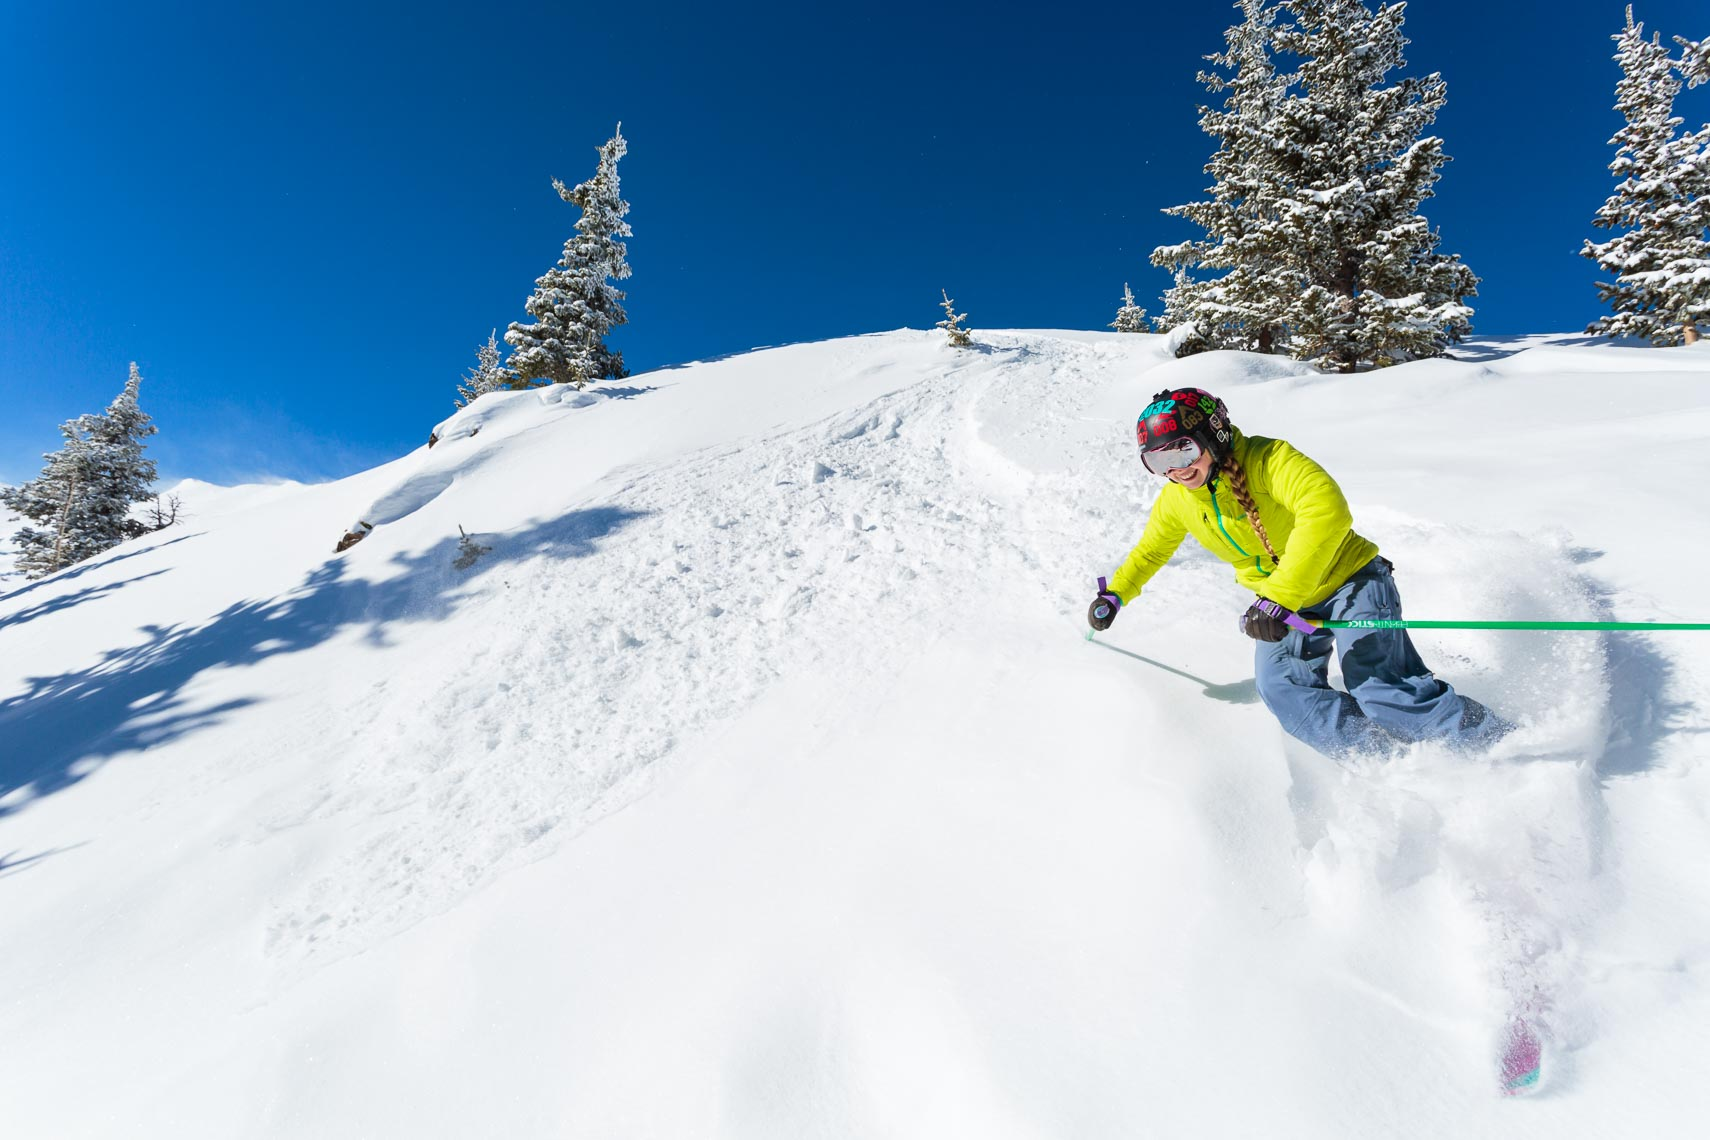 Skiing Powder Taos Ski Valley NM | Michael DeYoung